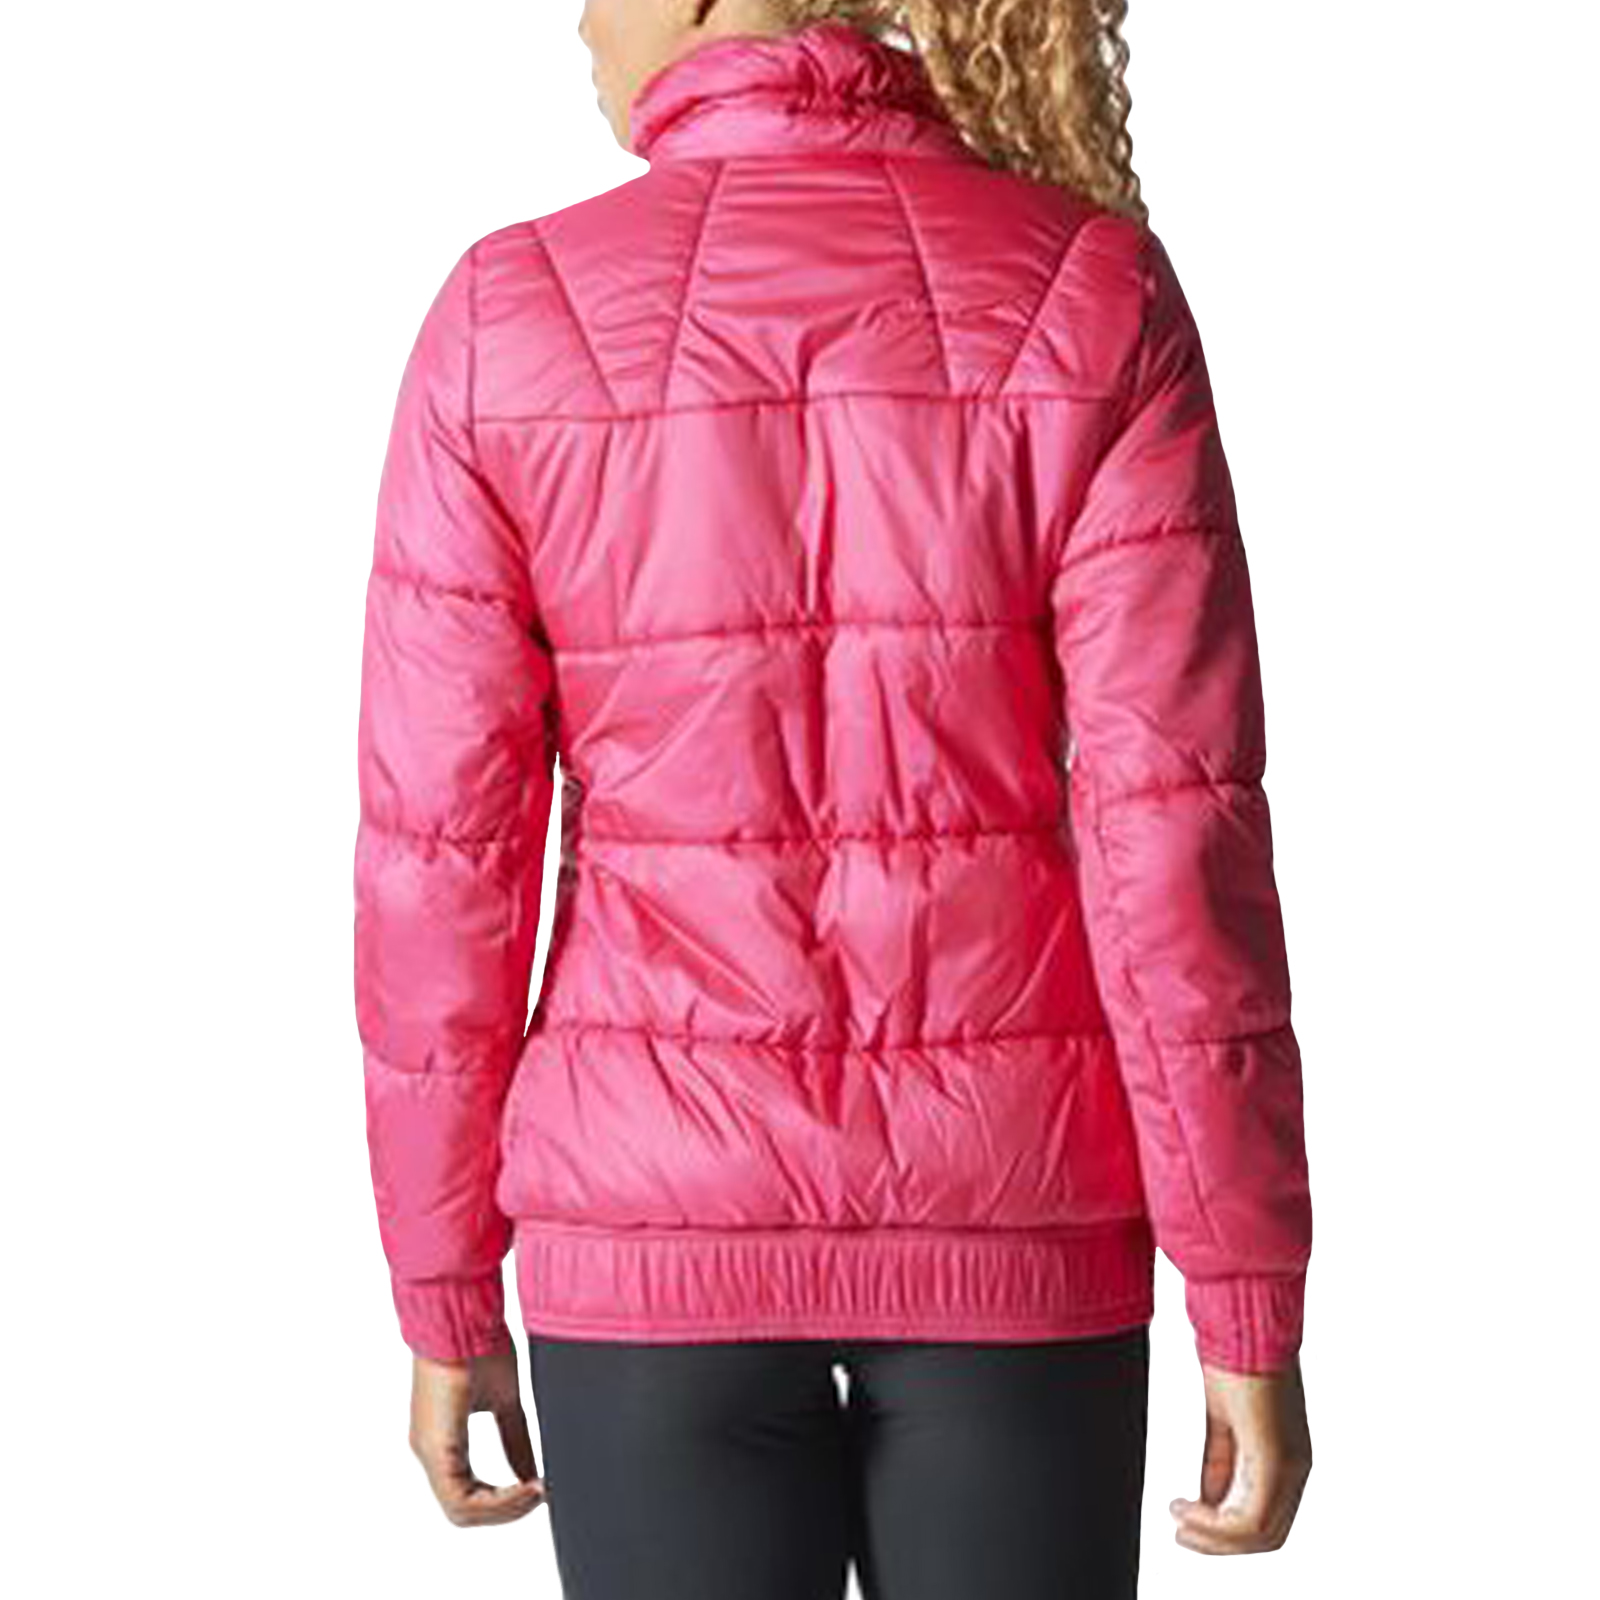 Shop a number of girls' winter jackets from some of the industry's best brands and bring home girls' coats that will help her stay warm in the elements. It is important that .